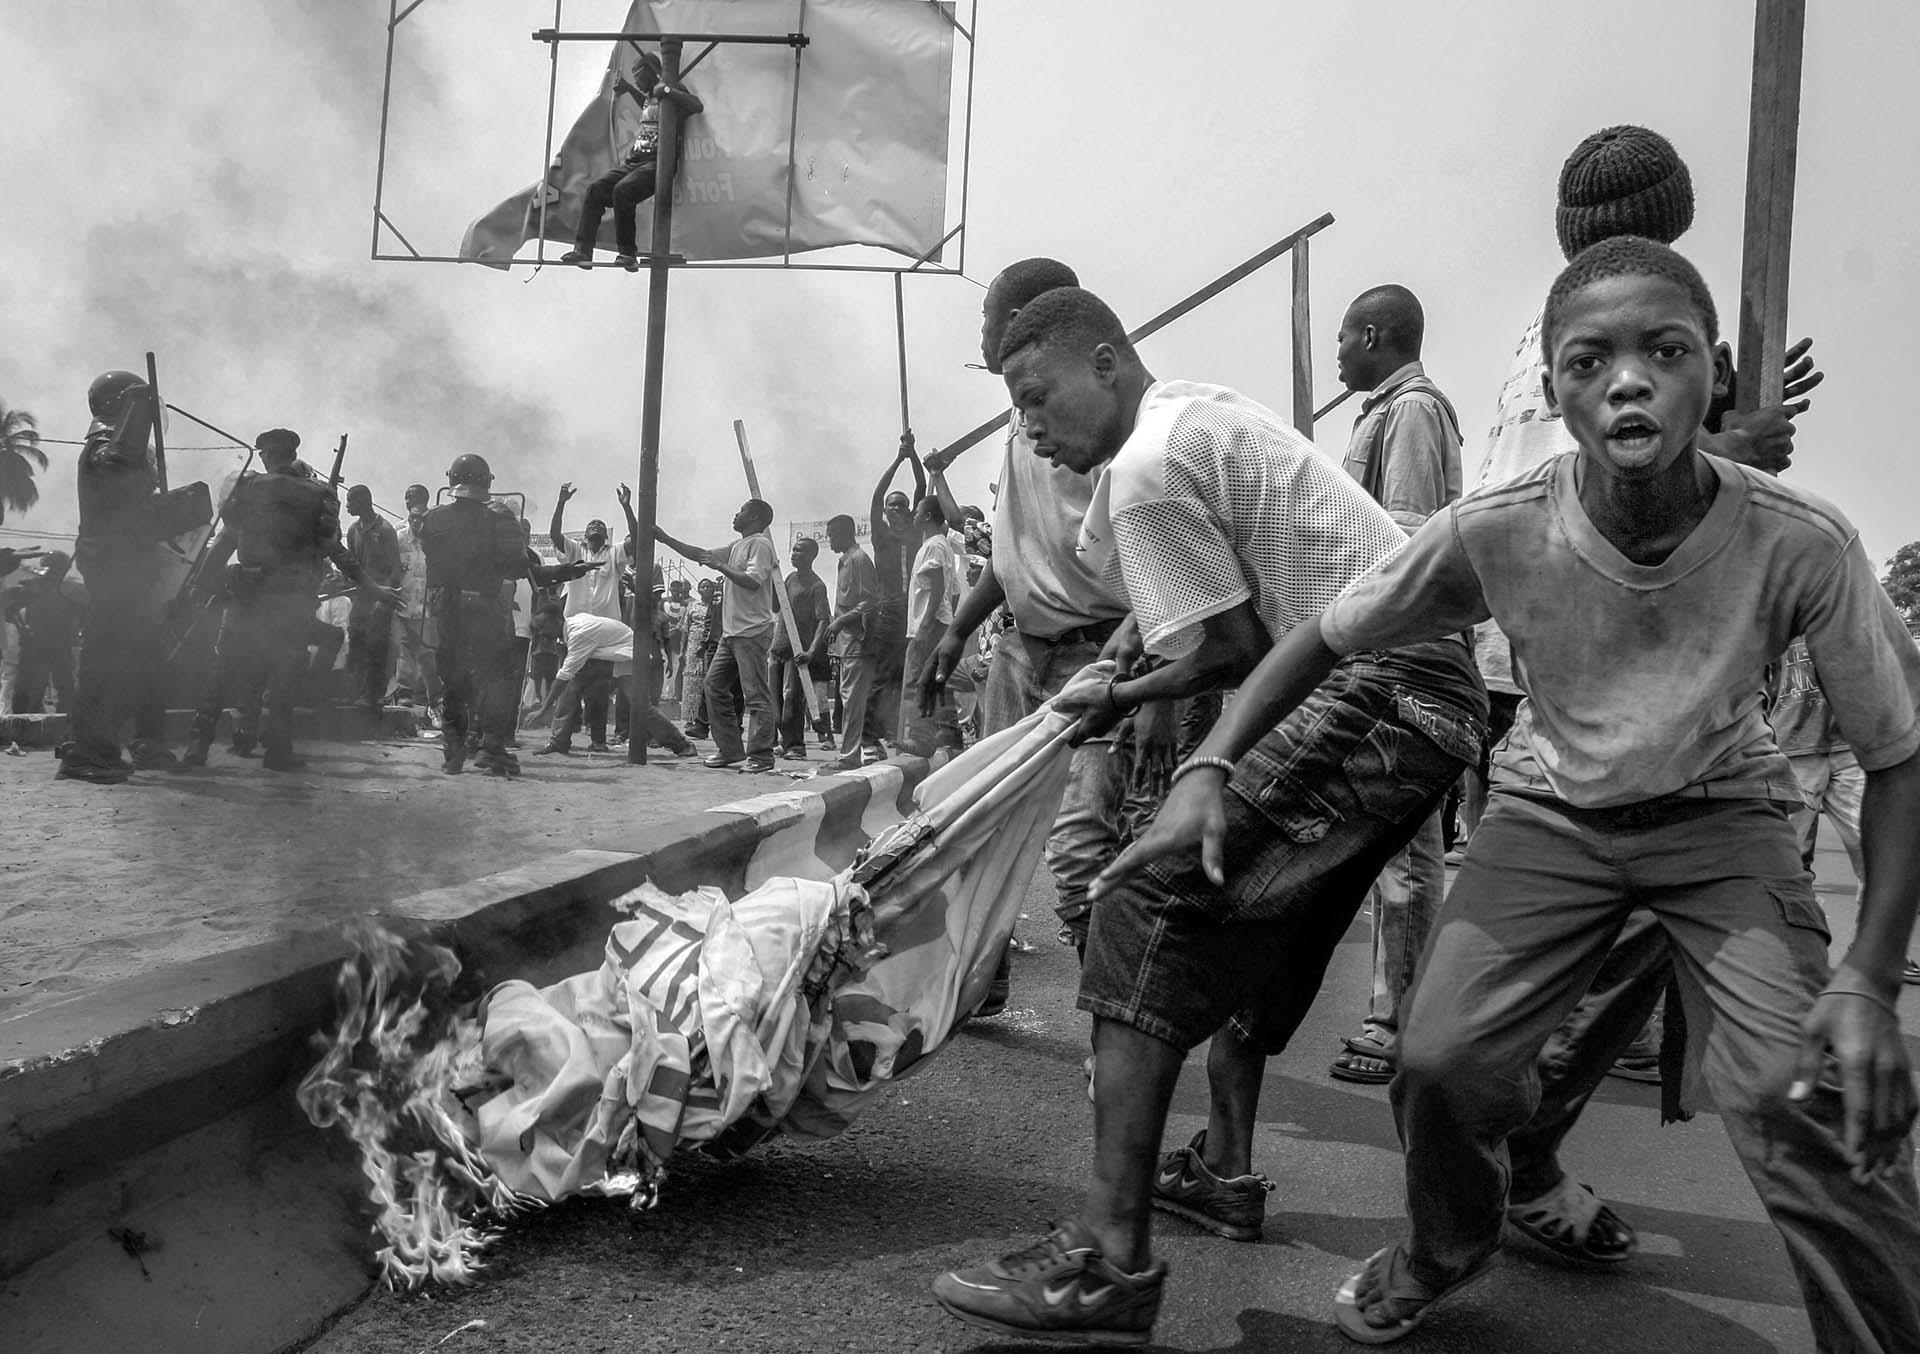 Supporters of UDPS, an opposition party which boycotted the election, burn campaign posters of candidates on the streets of Kinshasa, DR Congo.